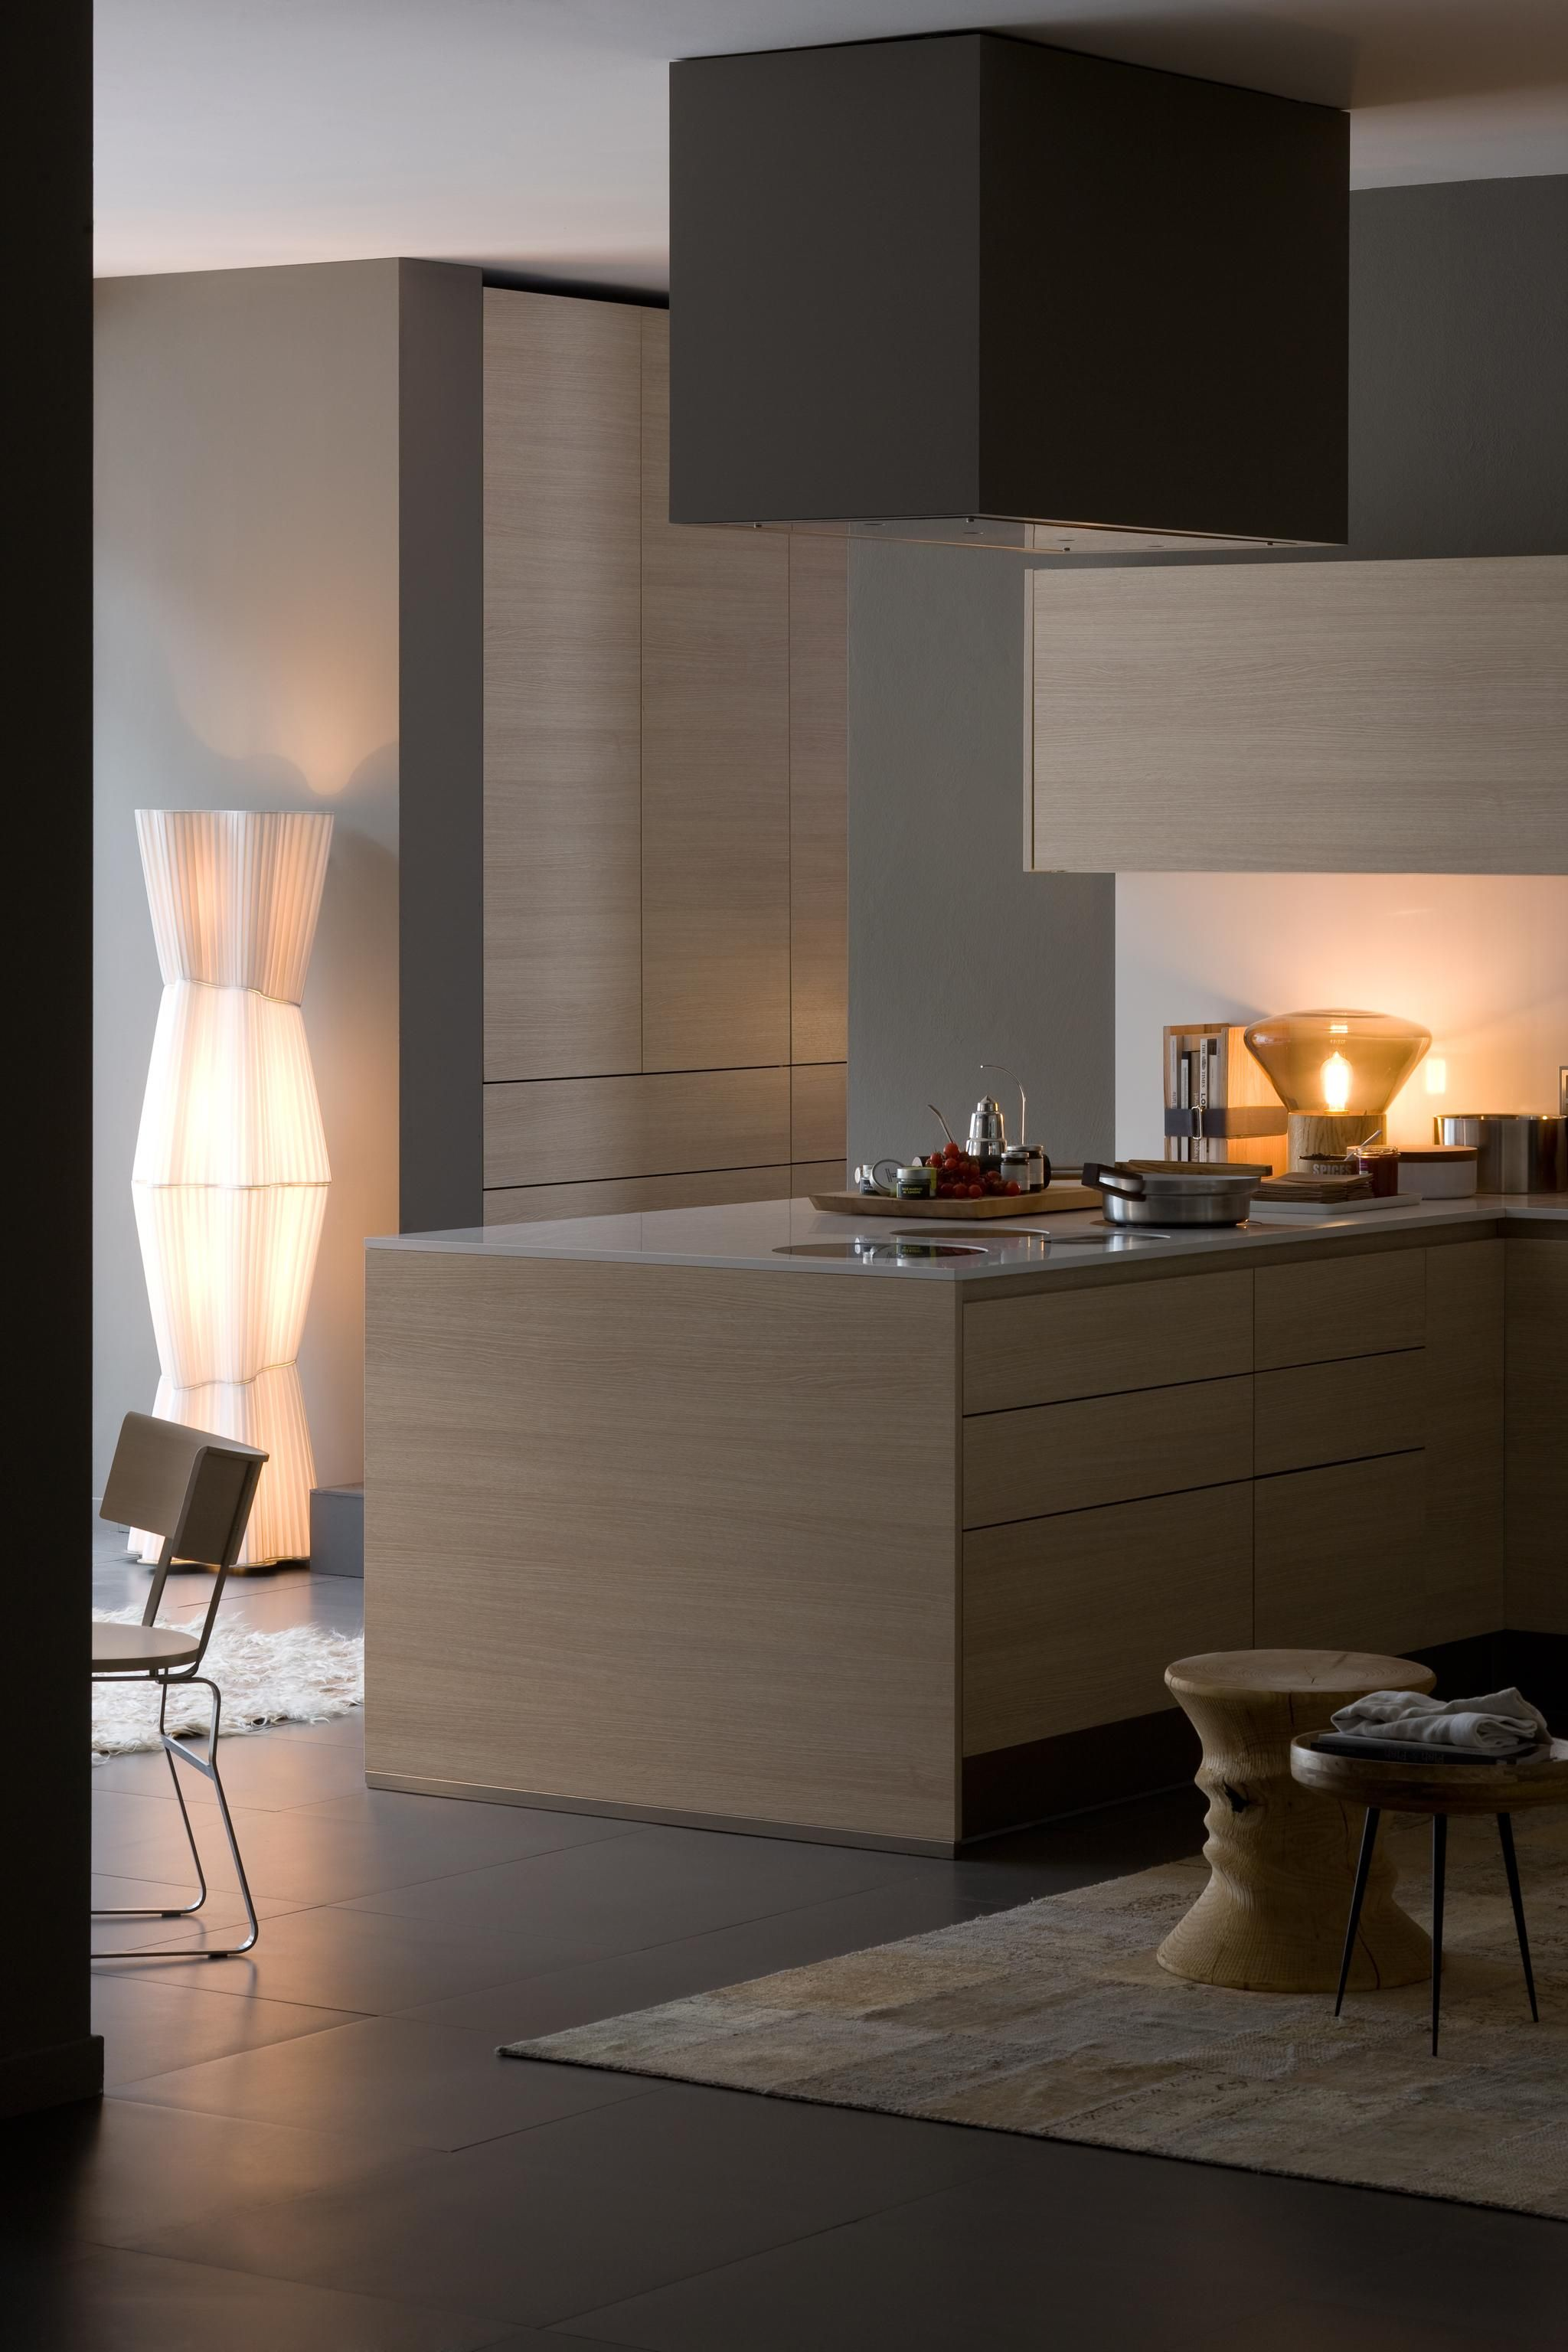 Gamma Kitchen designed by Antonio Citterio for Arclinea